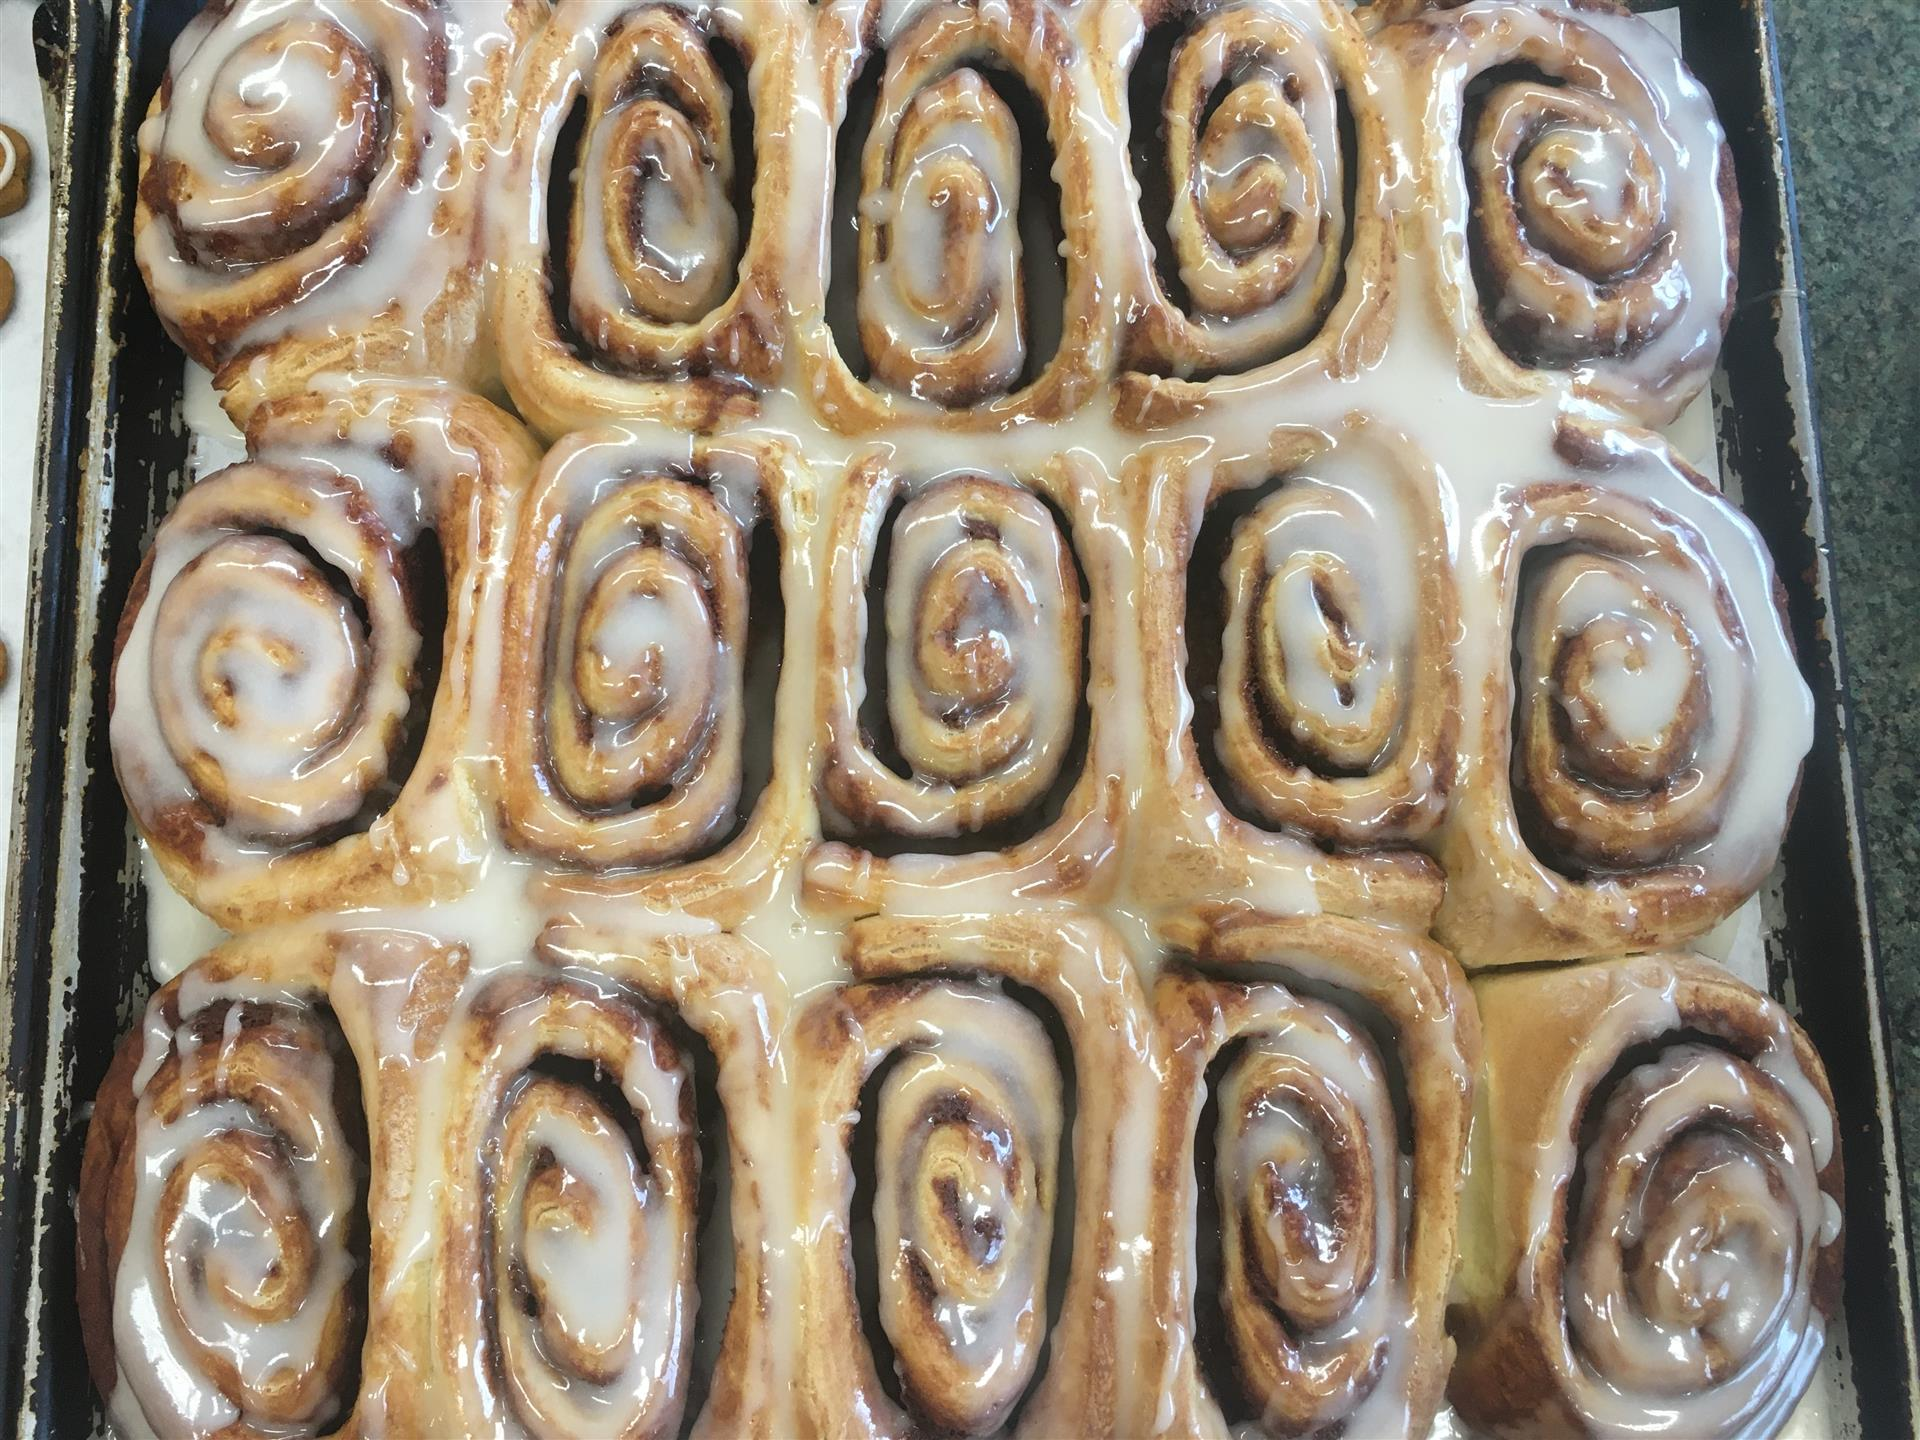 tray of fresh cinnamon rolls